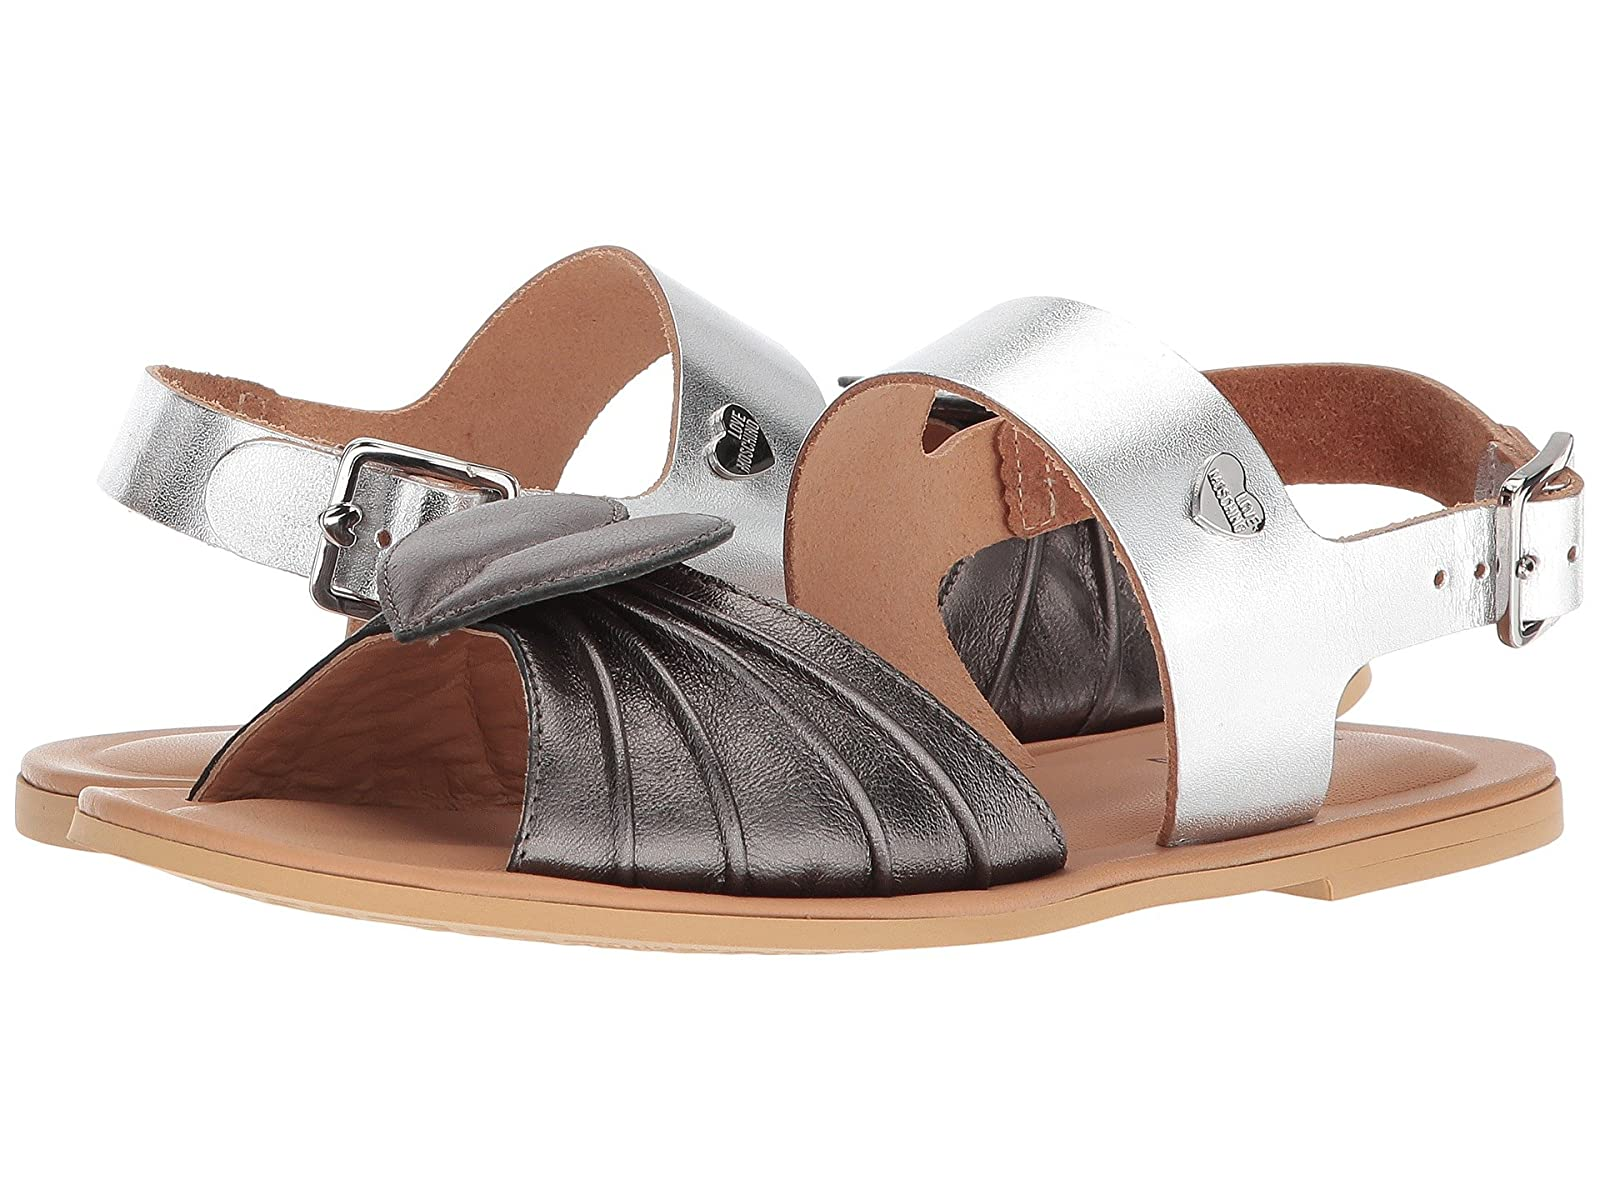 LOVE Moschino Leather Sandals w/ Tone on Tone AccessoriesAtmospheric grades have affordable shoes